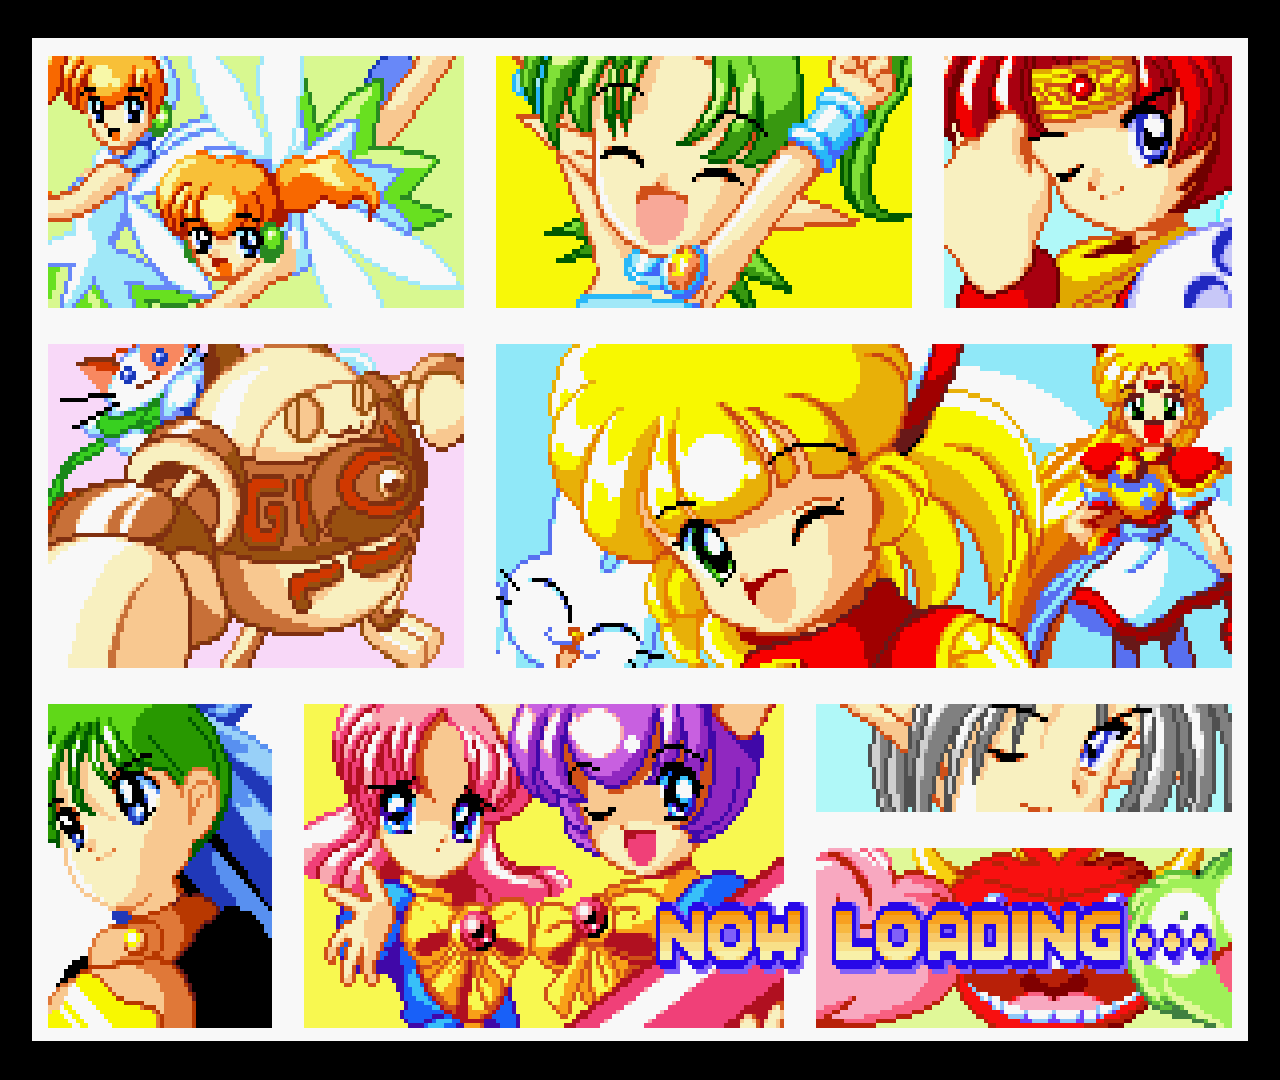 Figure 18 - Twinkle Star Sprites is a very anime-styled game which can be seen on the loading screens